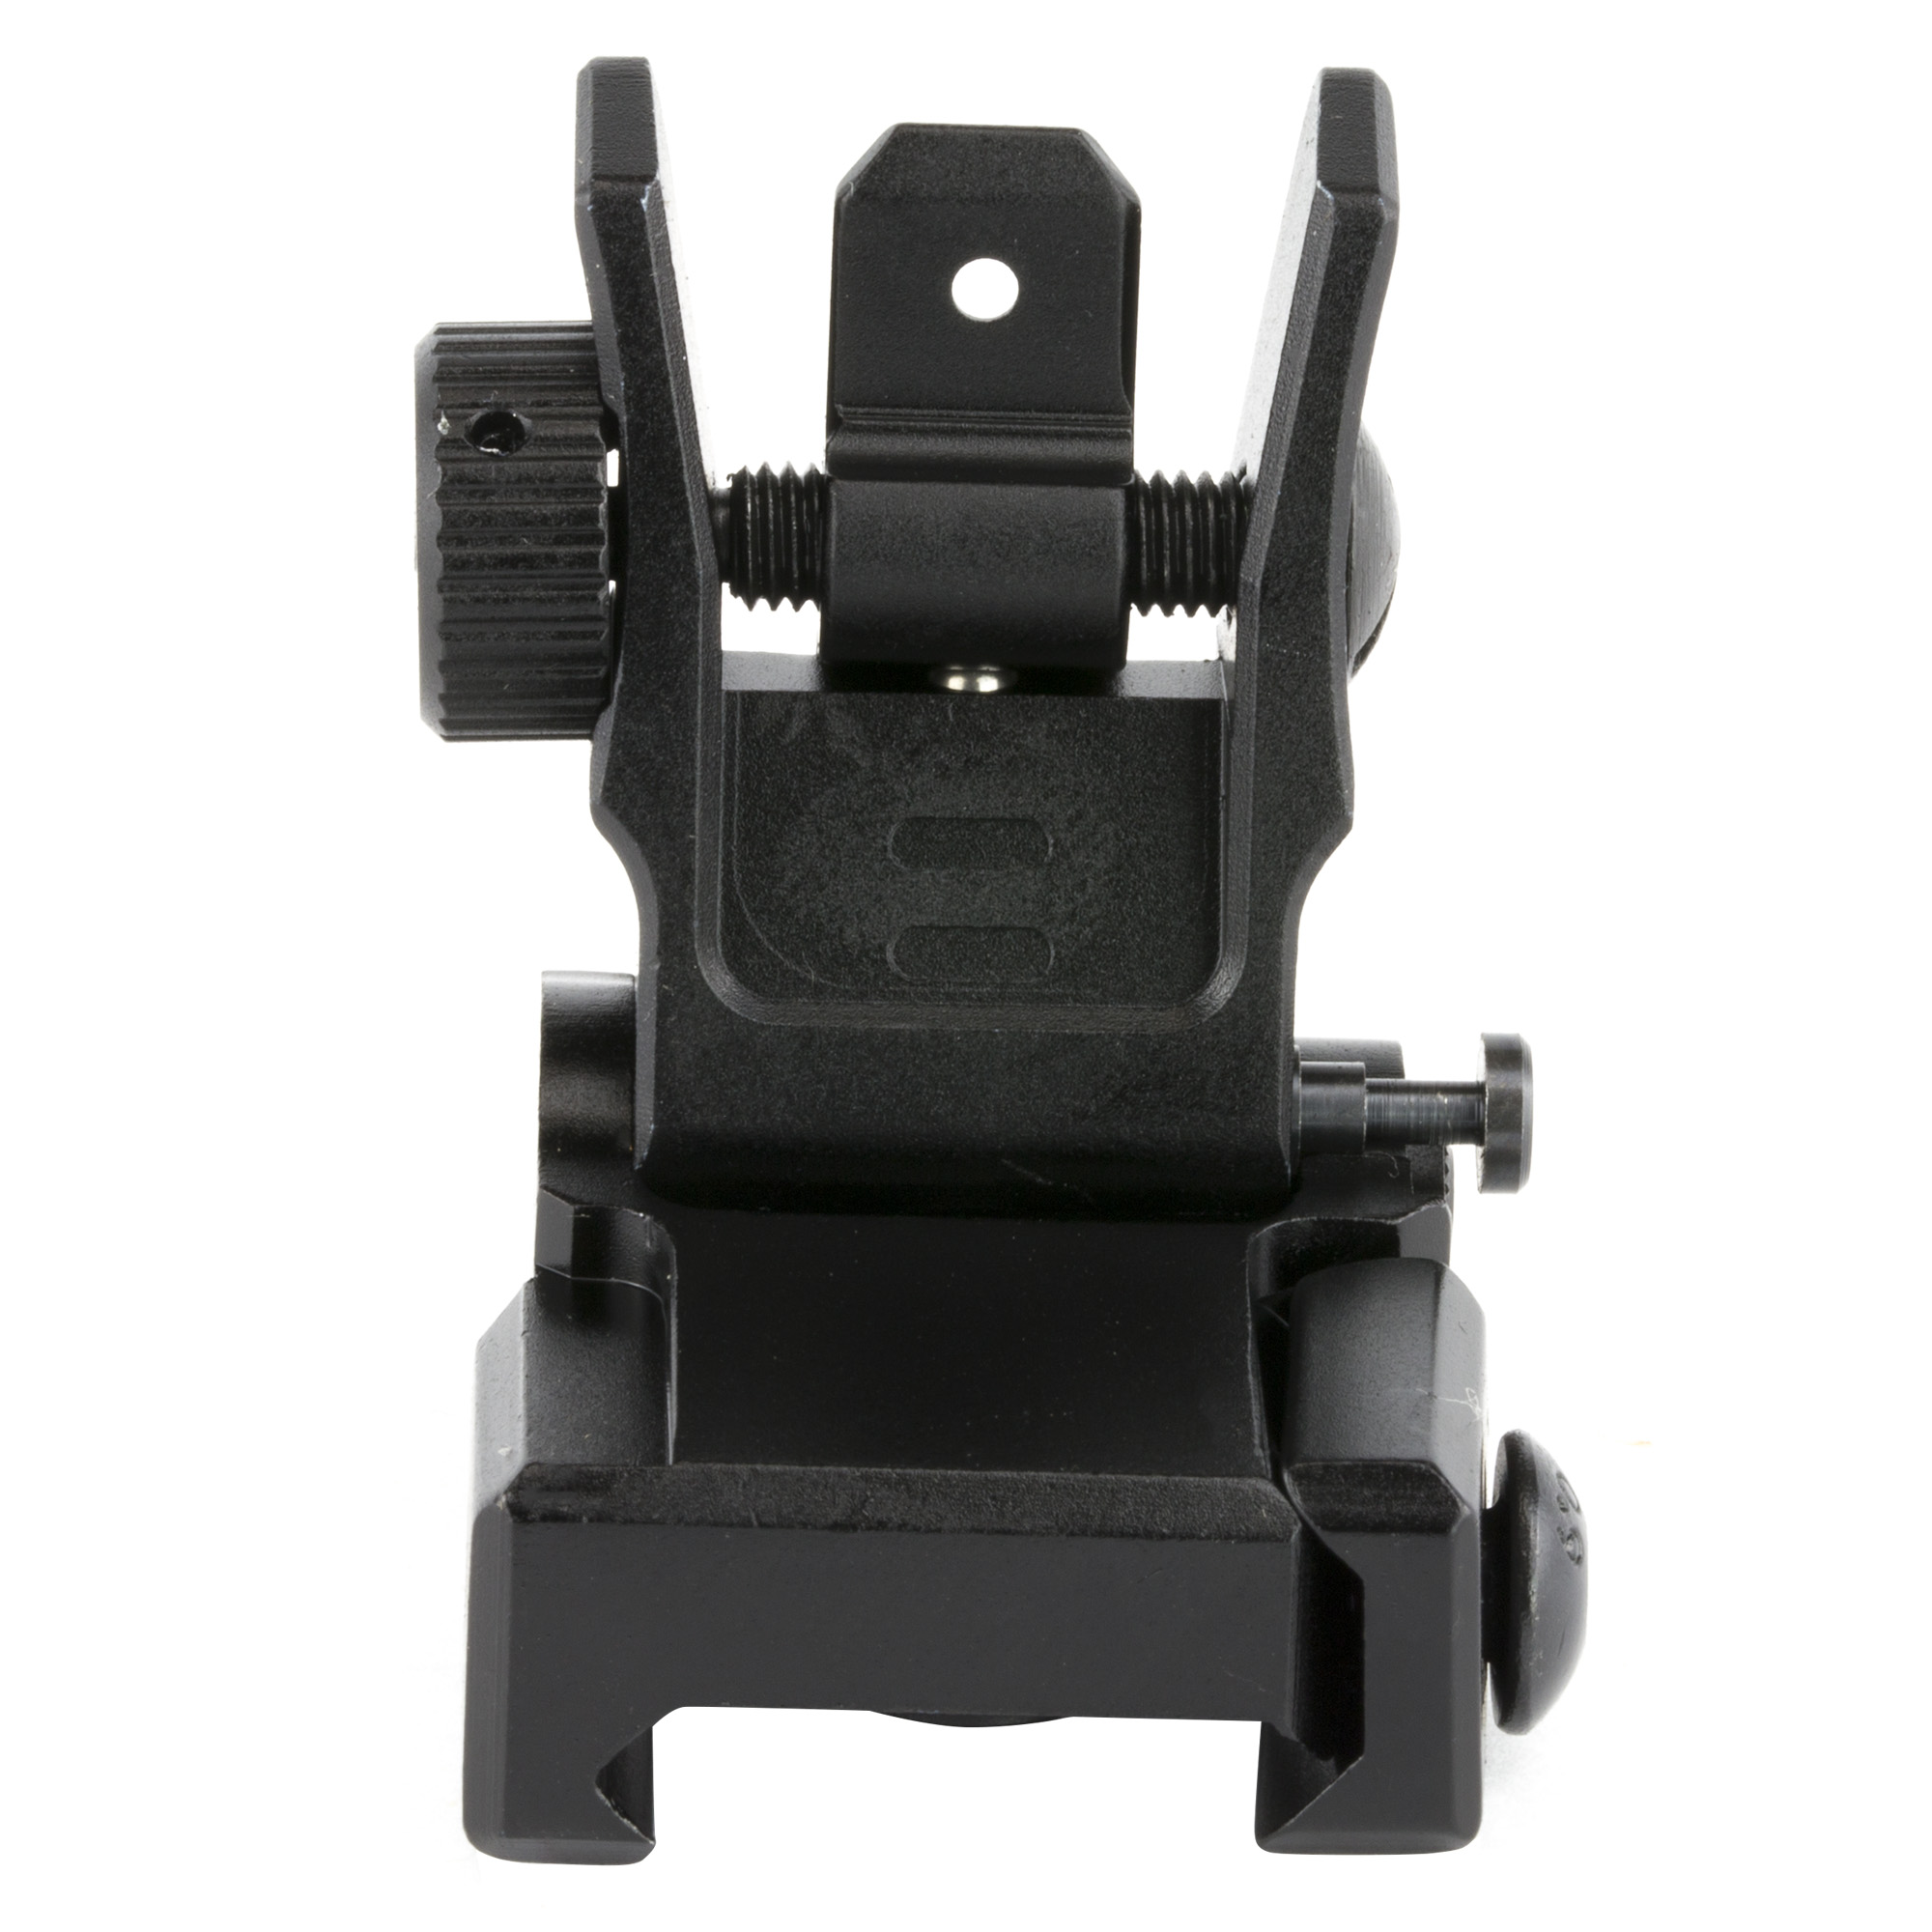 """The Leapers UTG Low Profile Dual Aiming Rear Sight is precision built from aircraft grade aluminum for superior durability"""" and a spring-loaded Posi-lock design with side plunger release allows for easy flipping and folding of the sight. These AR 15 Iron Sights by Leapers are equipped with a dual aiming aperture that not only boosts your accuracy during normal shooting"""" but is also ideal for moving target engagements as well as limited visibility shooting environments. Easily installed on a picatinny rail equipped AR platform"""" the Leapers UTG Flip-Up Dual Aiming Sight guarantees zero retention with a Posi-lock plunger coupled with spring activated ball bearings. Make your rear sight as important as your optic with the Leapers UTG Dual Aiming Rear Sight for AR."""